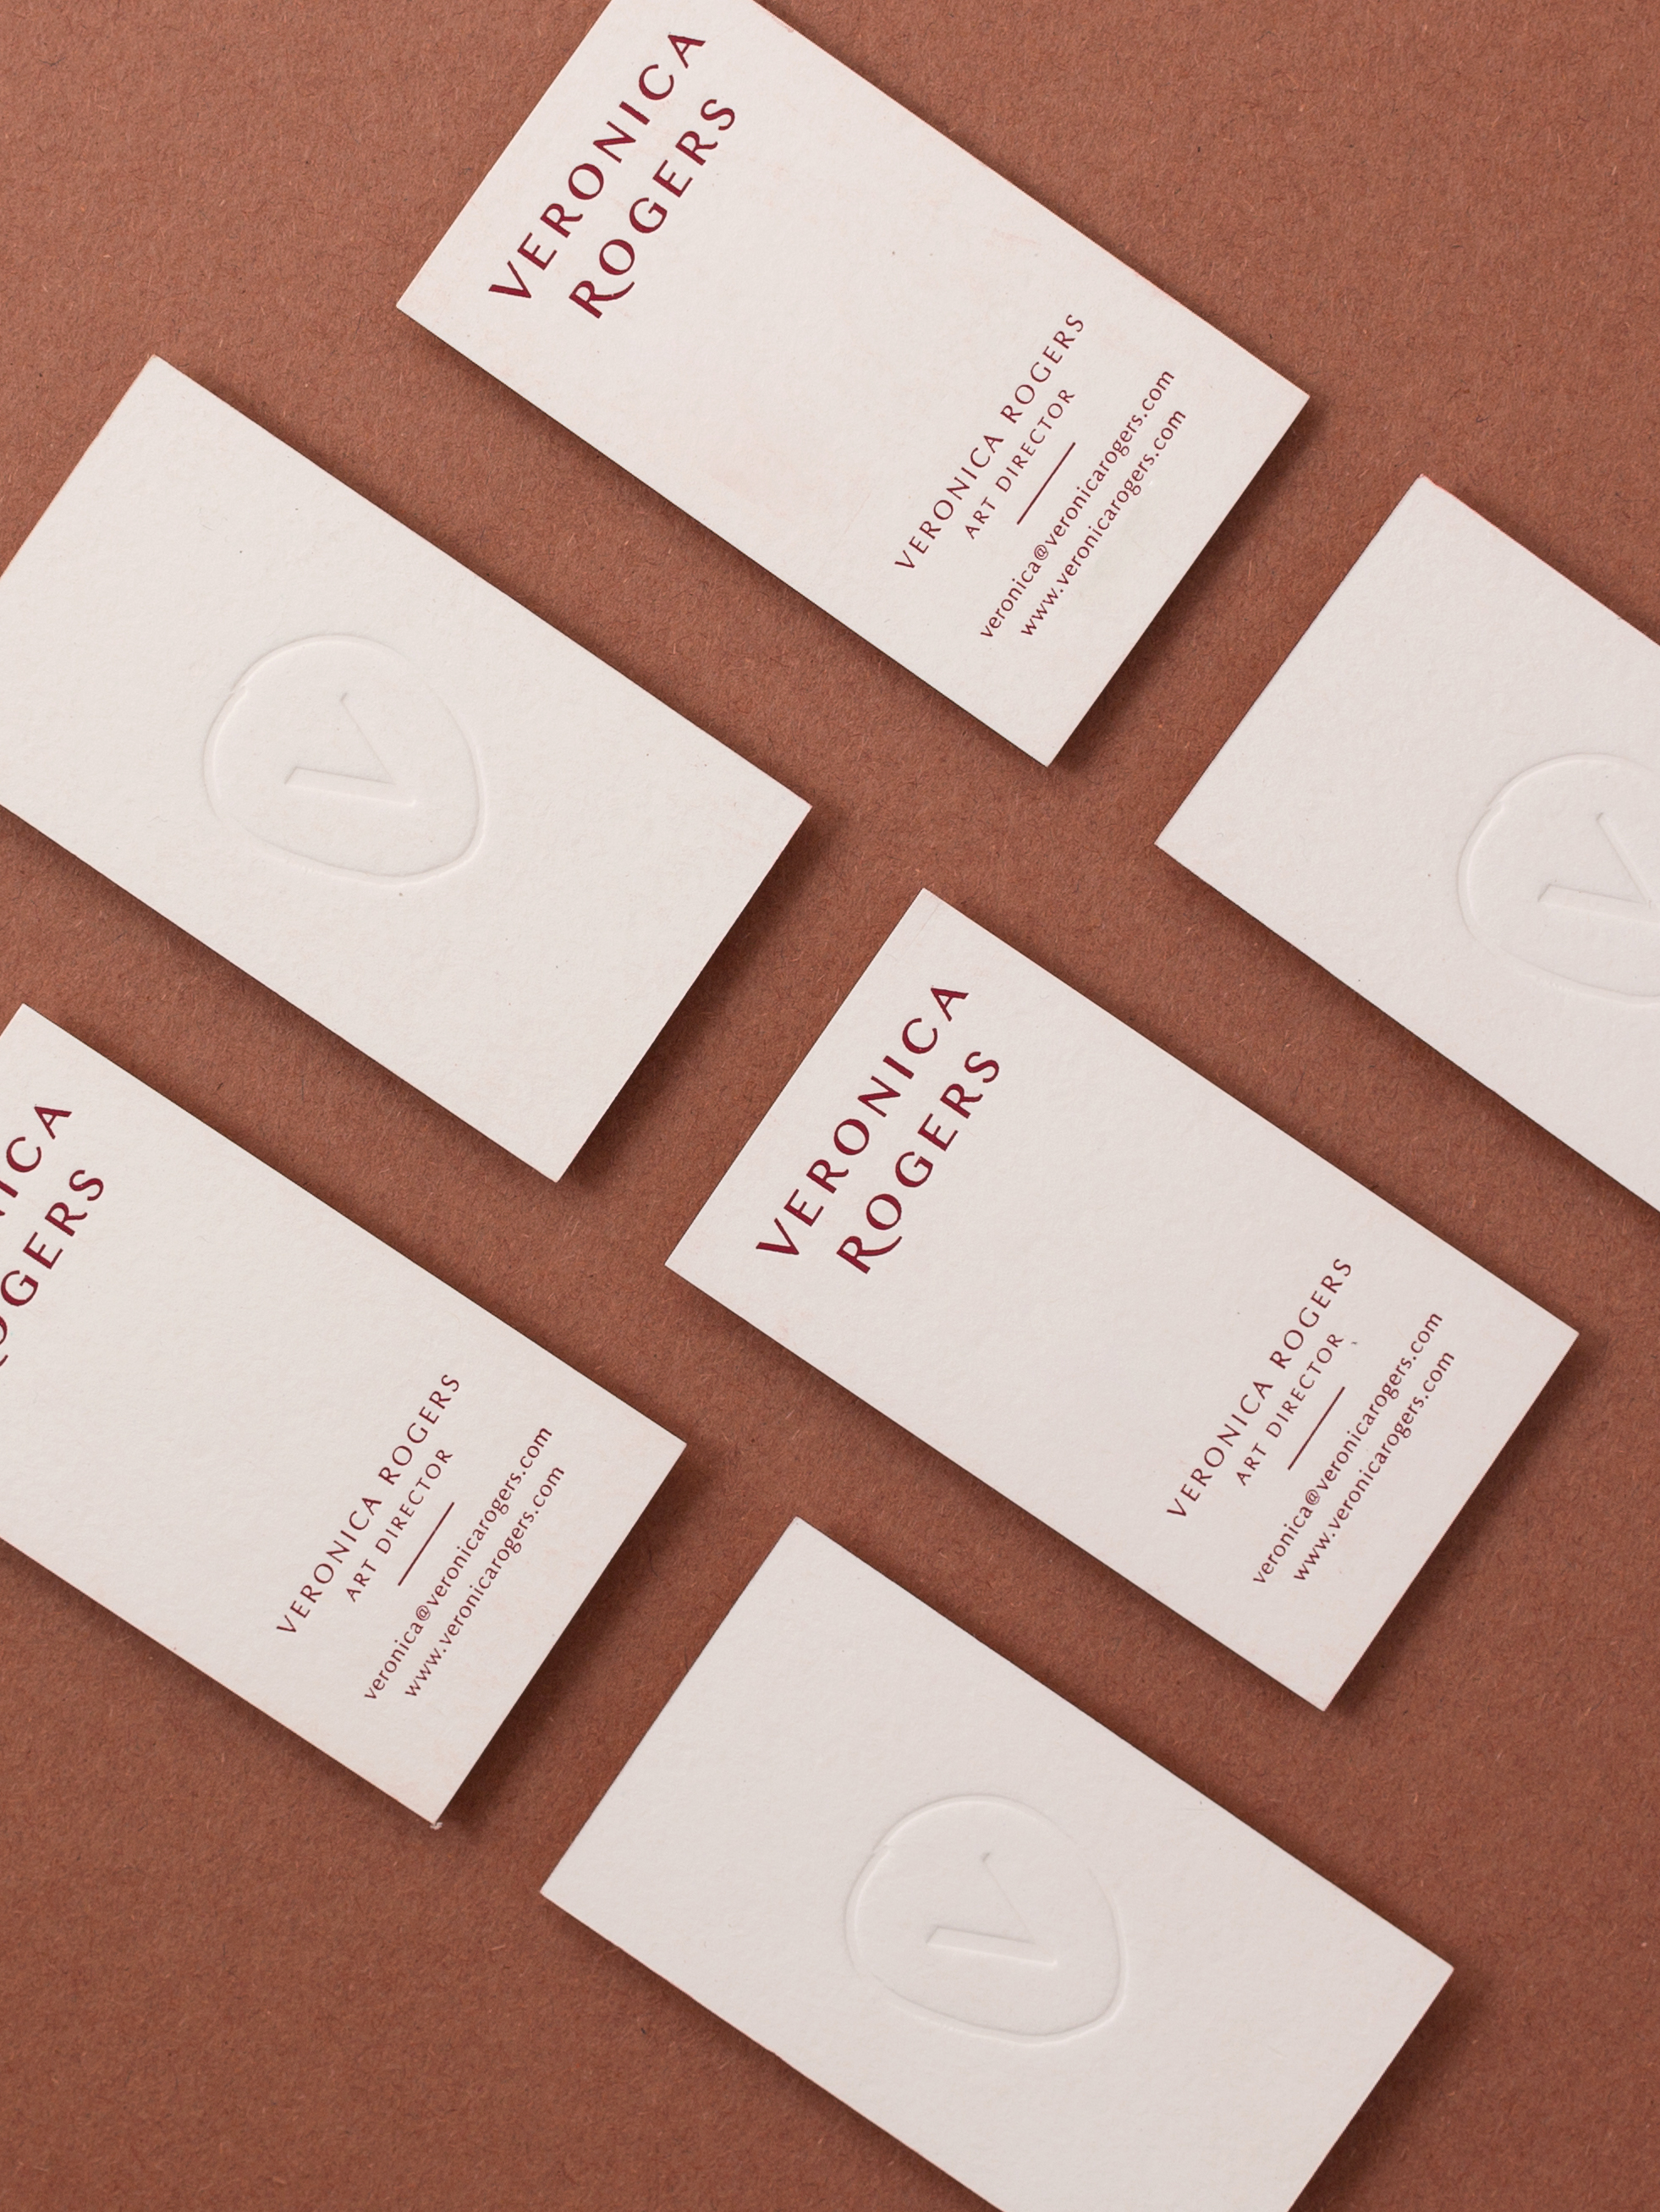 Veronica Rogers branding by Shoppe Theory. Photograph by Anna Wu